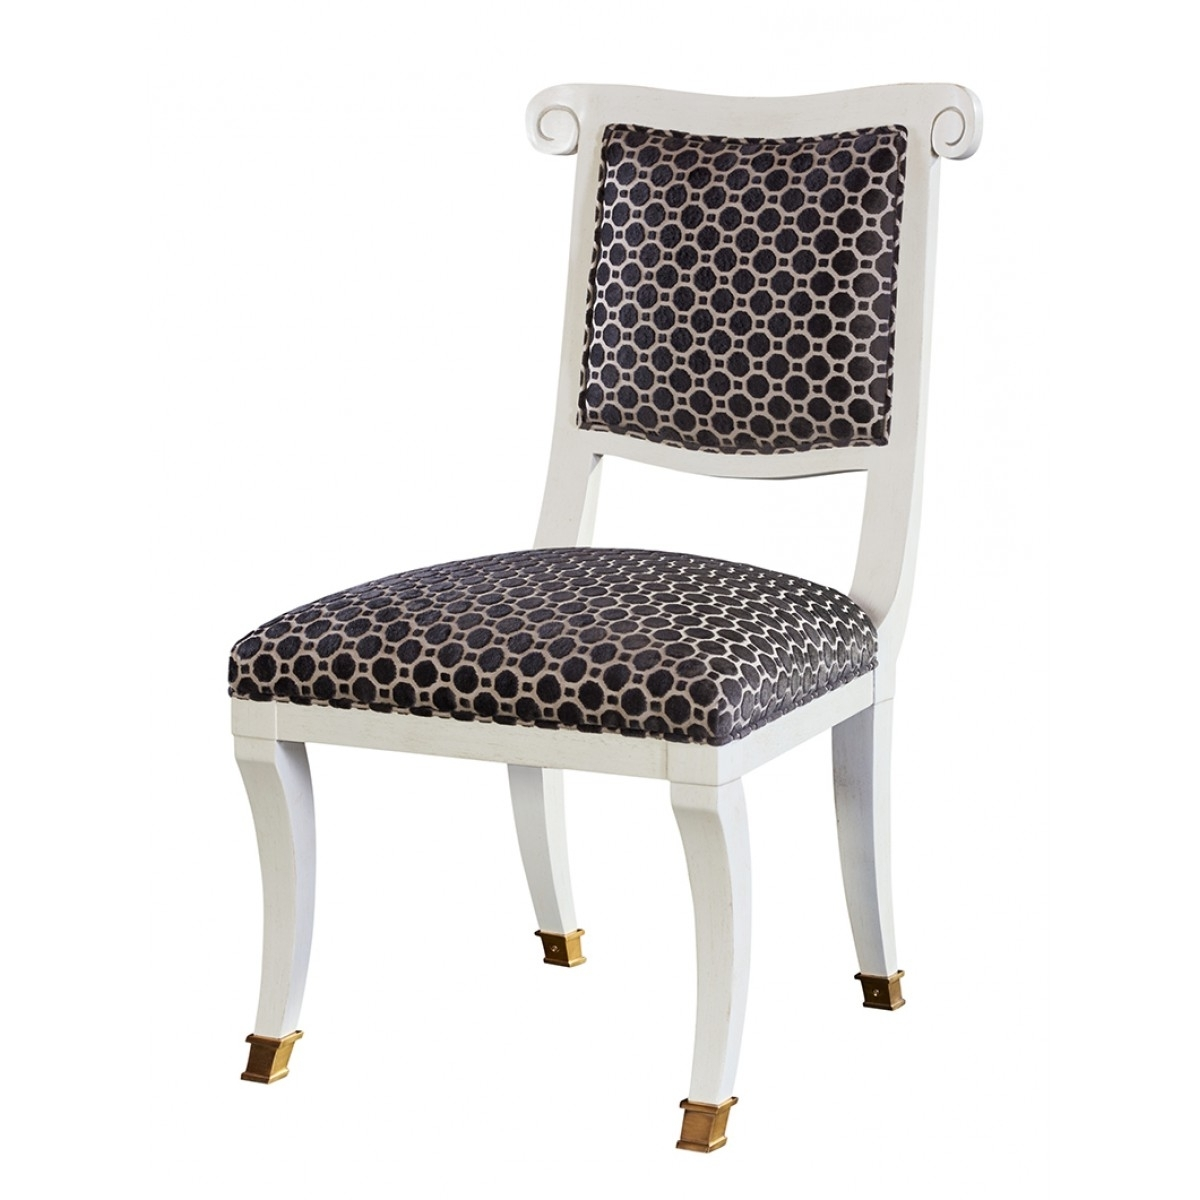 Most Recent Hickory Chair Alexa Hampton Abigail Side Chair Burnished Brass Ferrules In Alexa White Side Chairs (View 13 of 20)